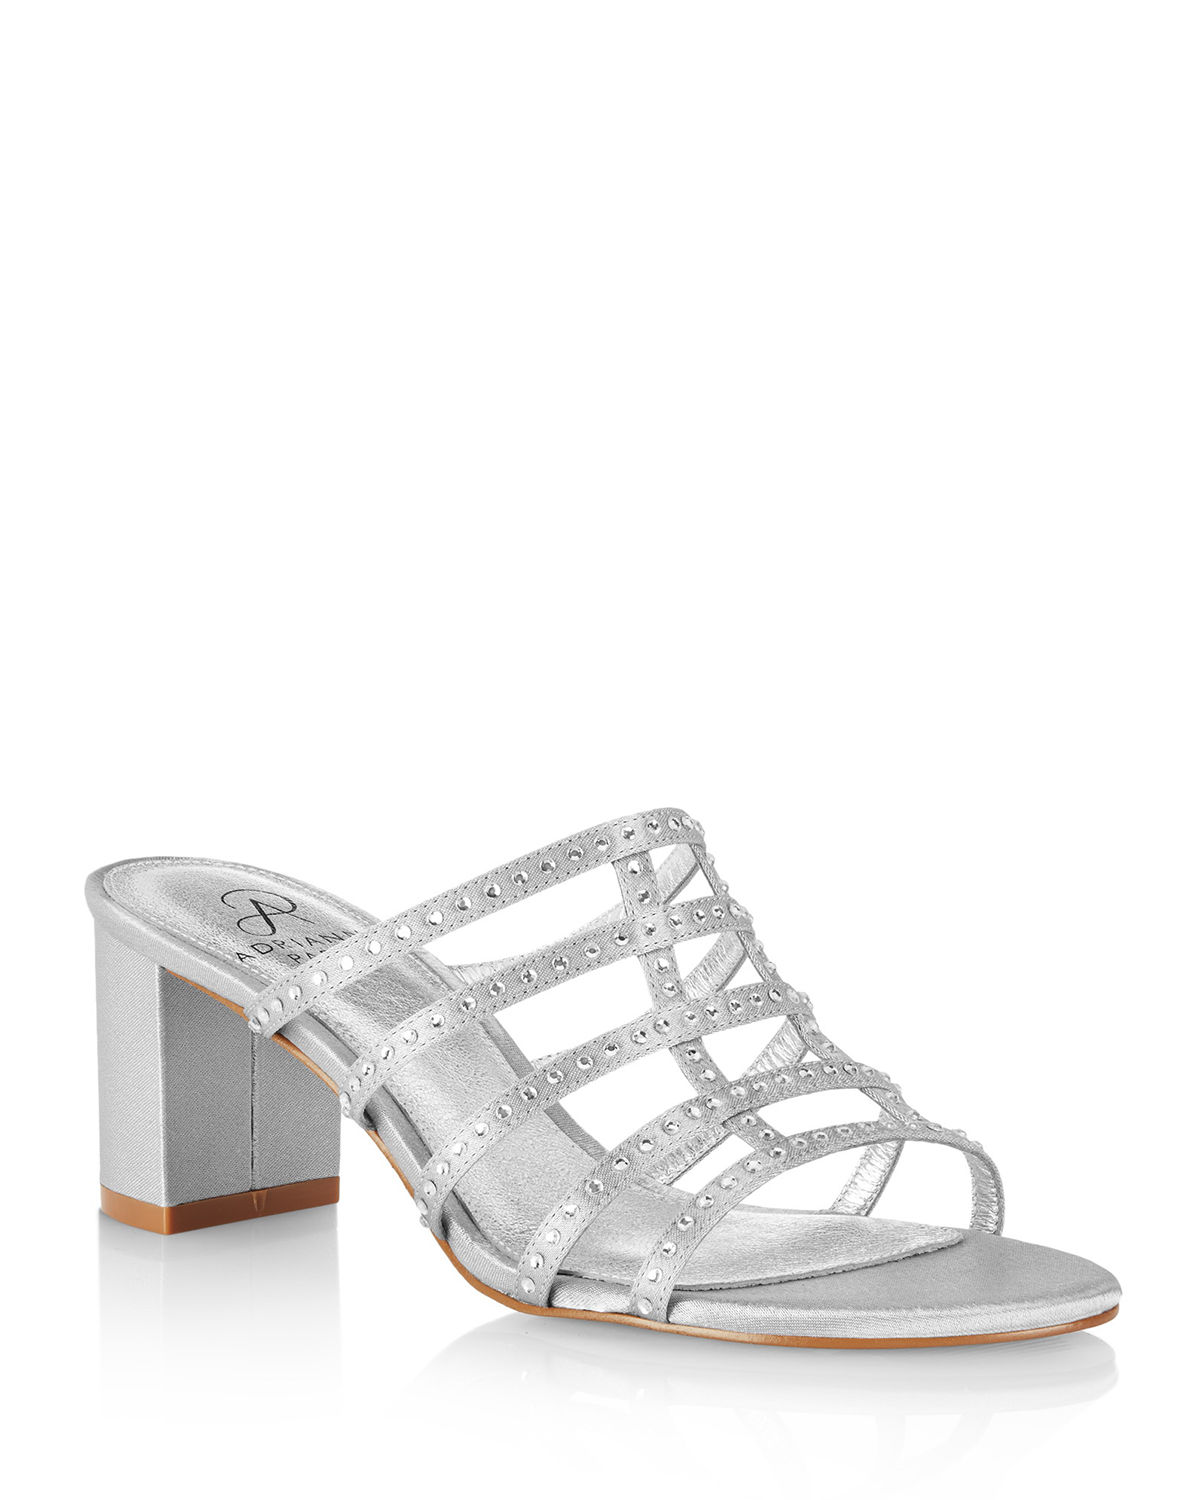 Adrianna Papell Sandals APOLLO STUDDED CAGE SANDALS